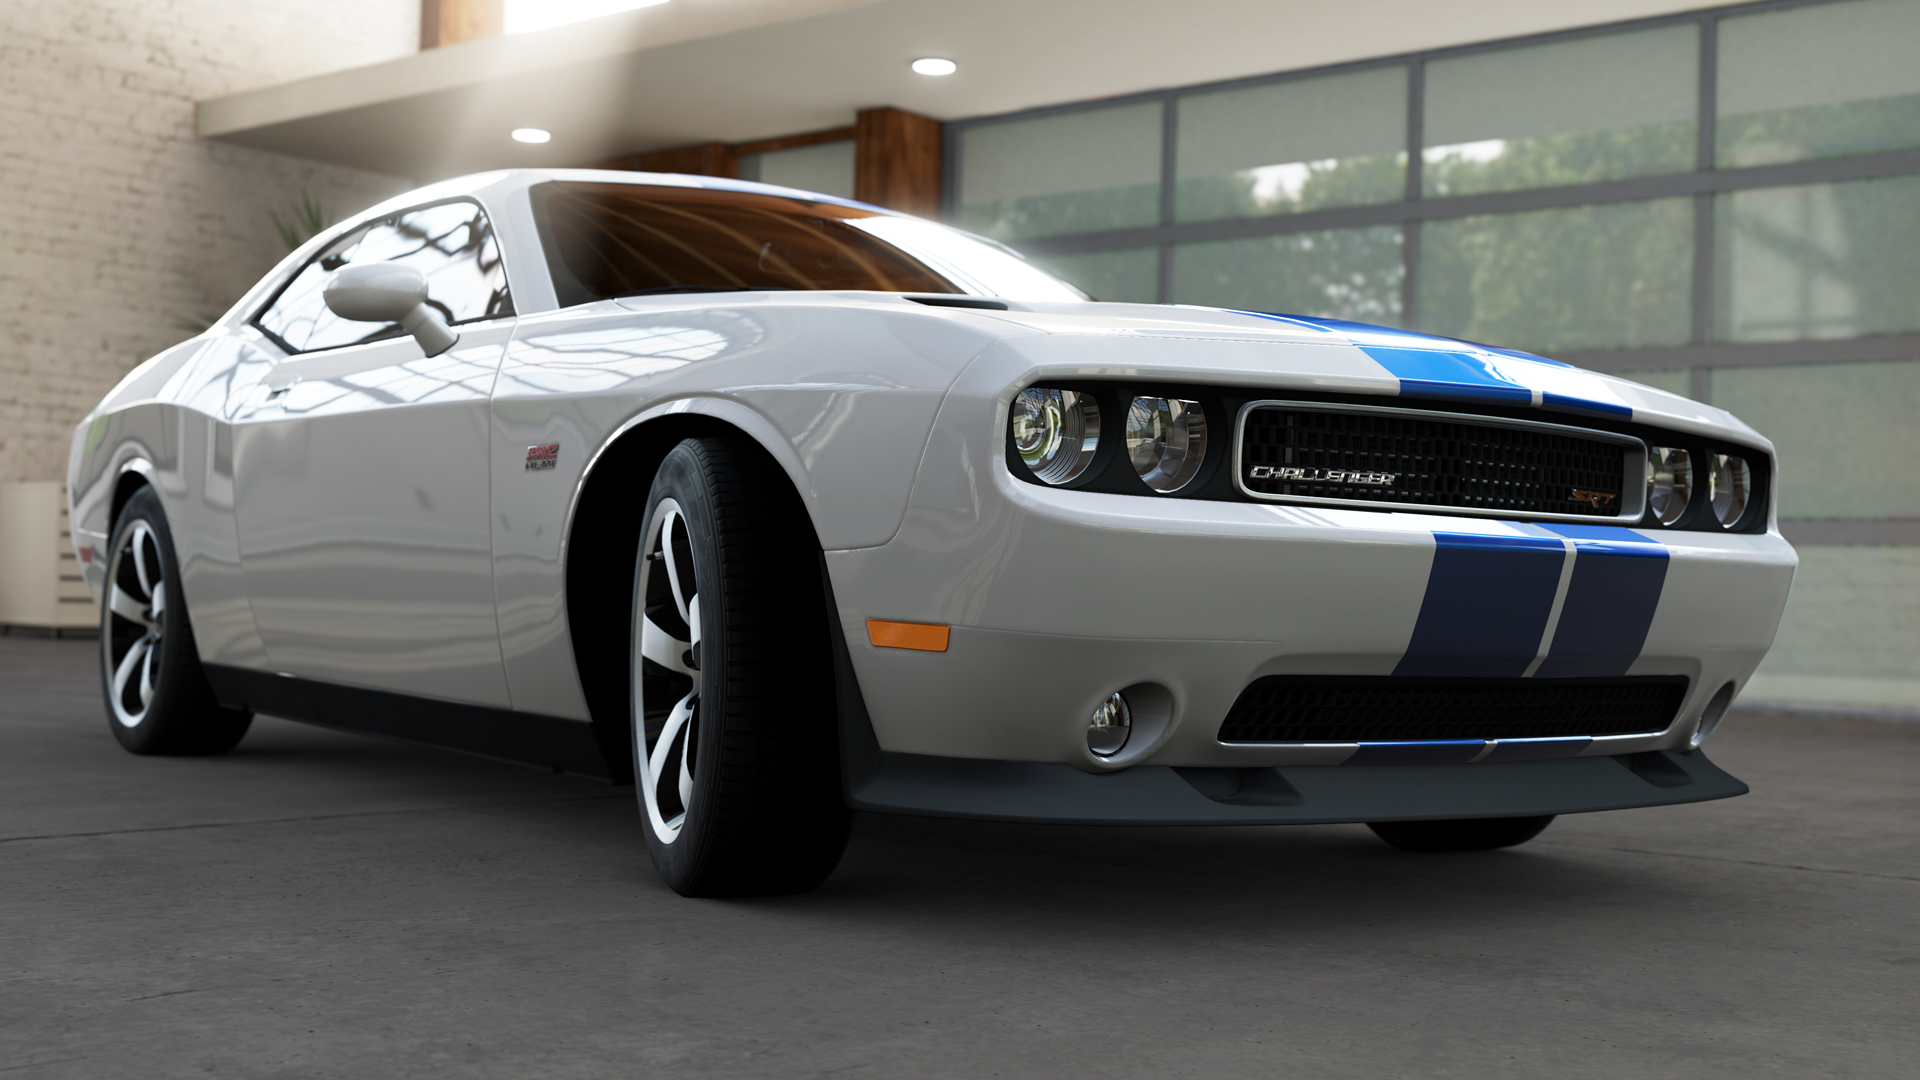 dodge charger 1970 fast and furious 8 with Dodge on Volkswagen Jetta 1995 De Rapido Y Furioso En Venta likewise Fast And Furious Live Show All You Need To Know in addition Dodge additionally Collectionddwn Dodge Charger also Muscle Car Meets Hypercar Tantrum Charger.